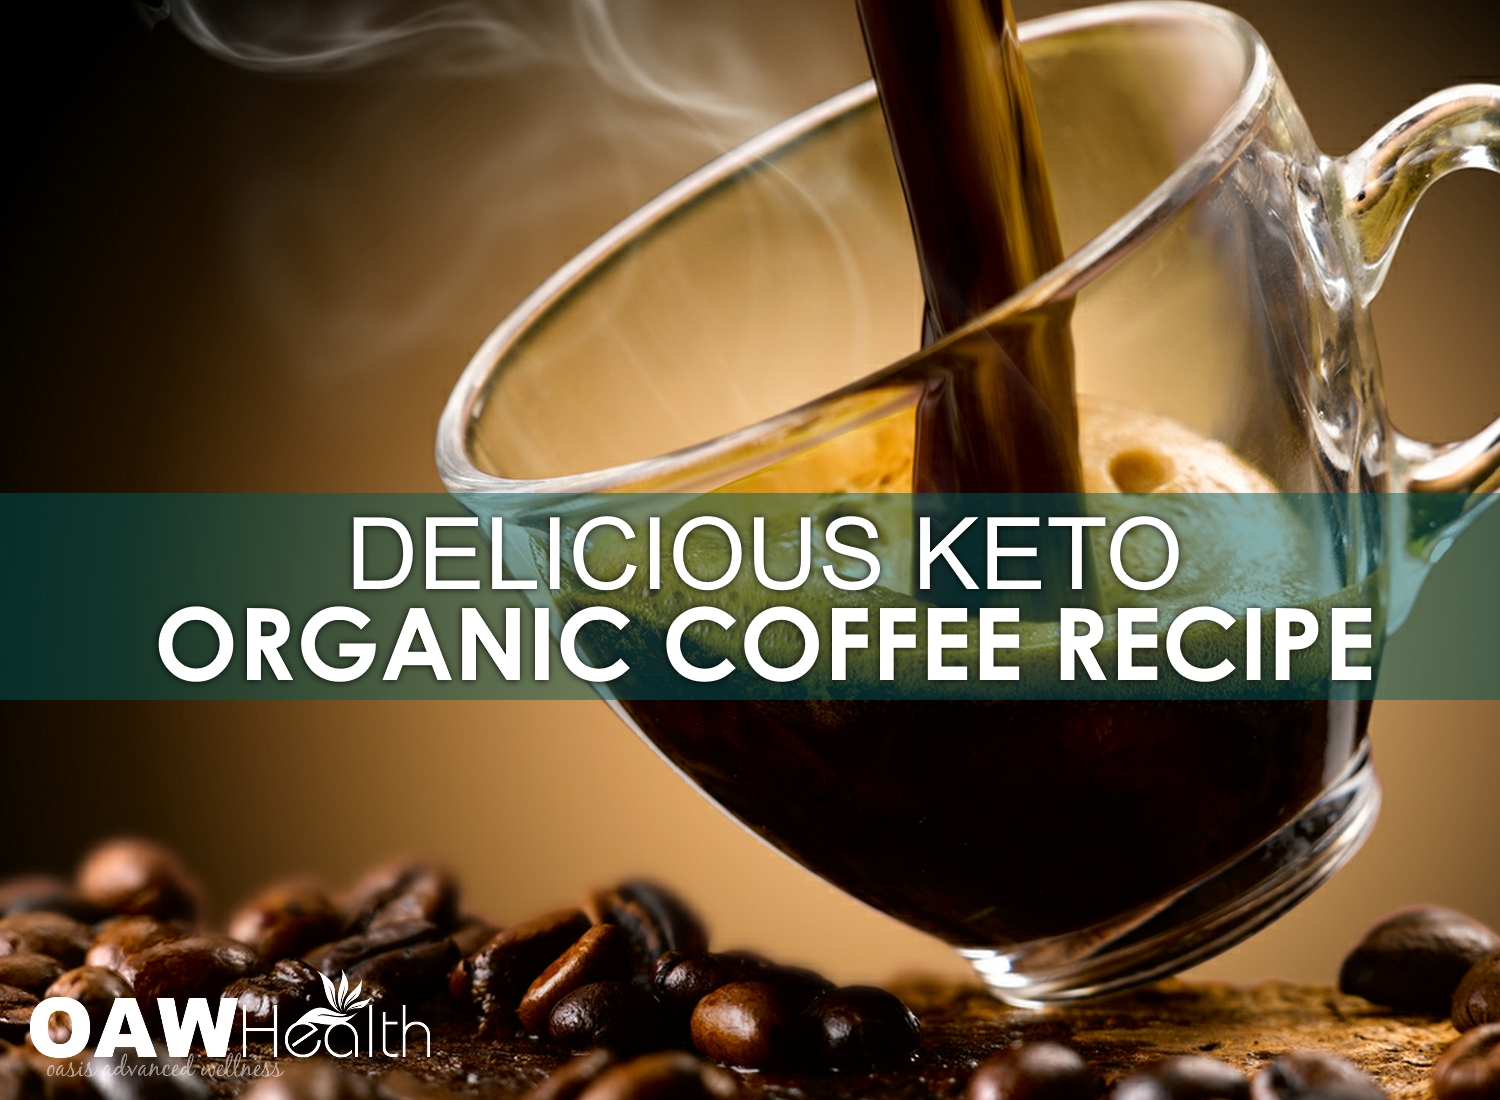 Delicious KETO Organic Coffee Recipe